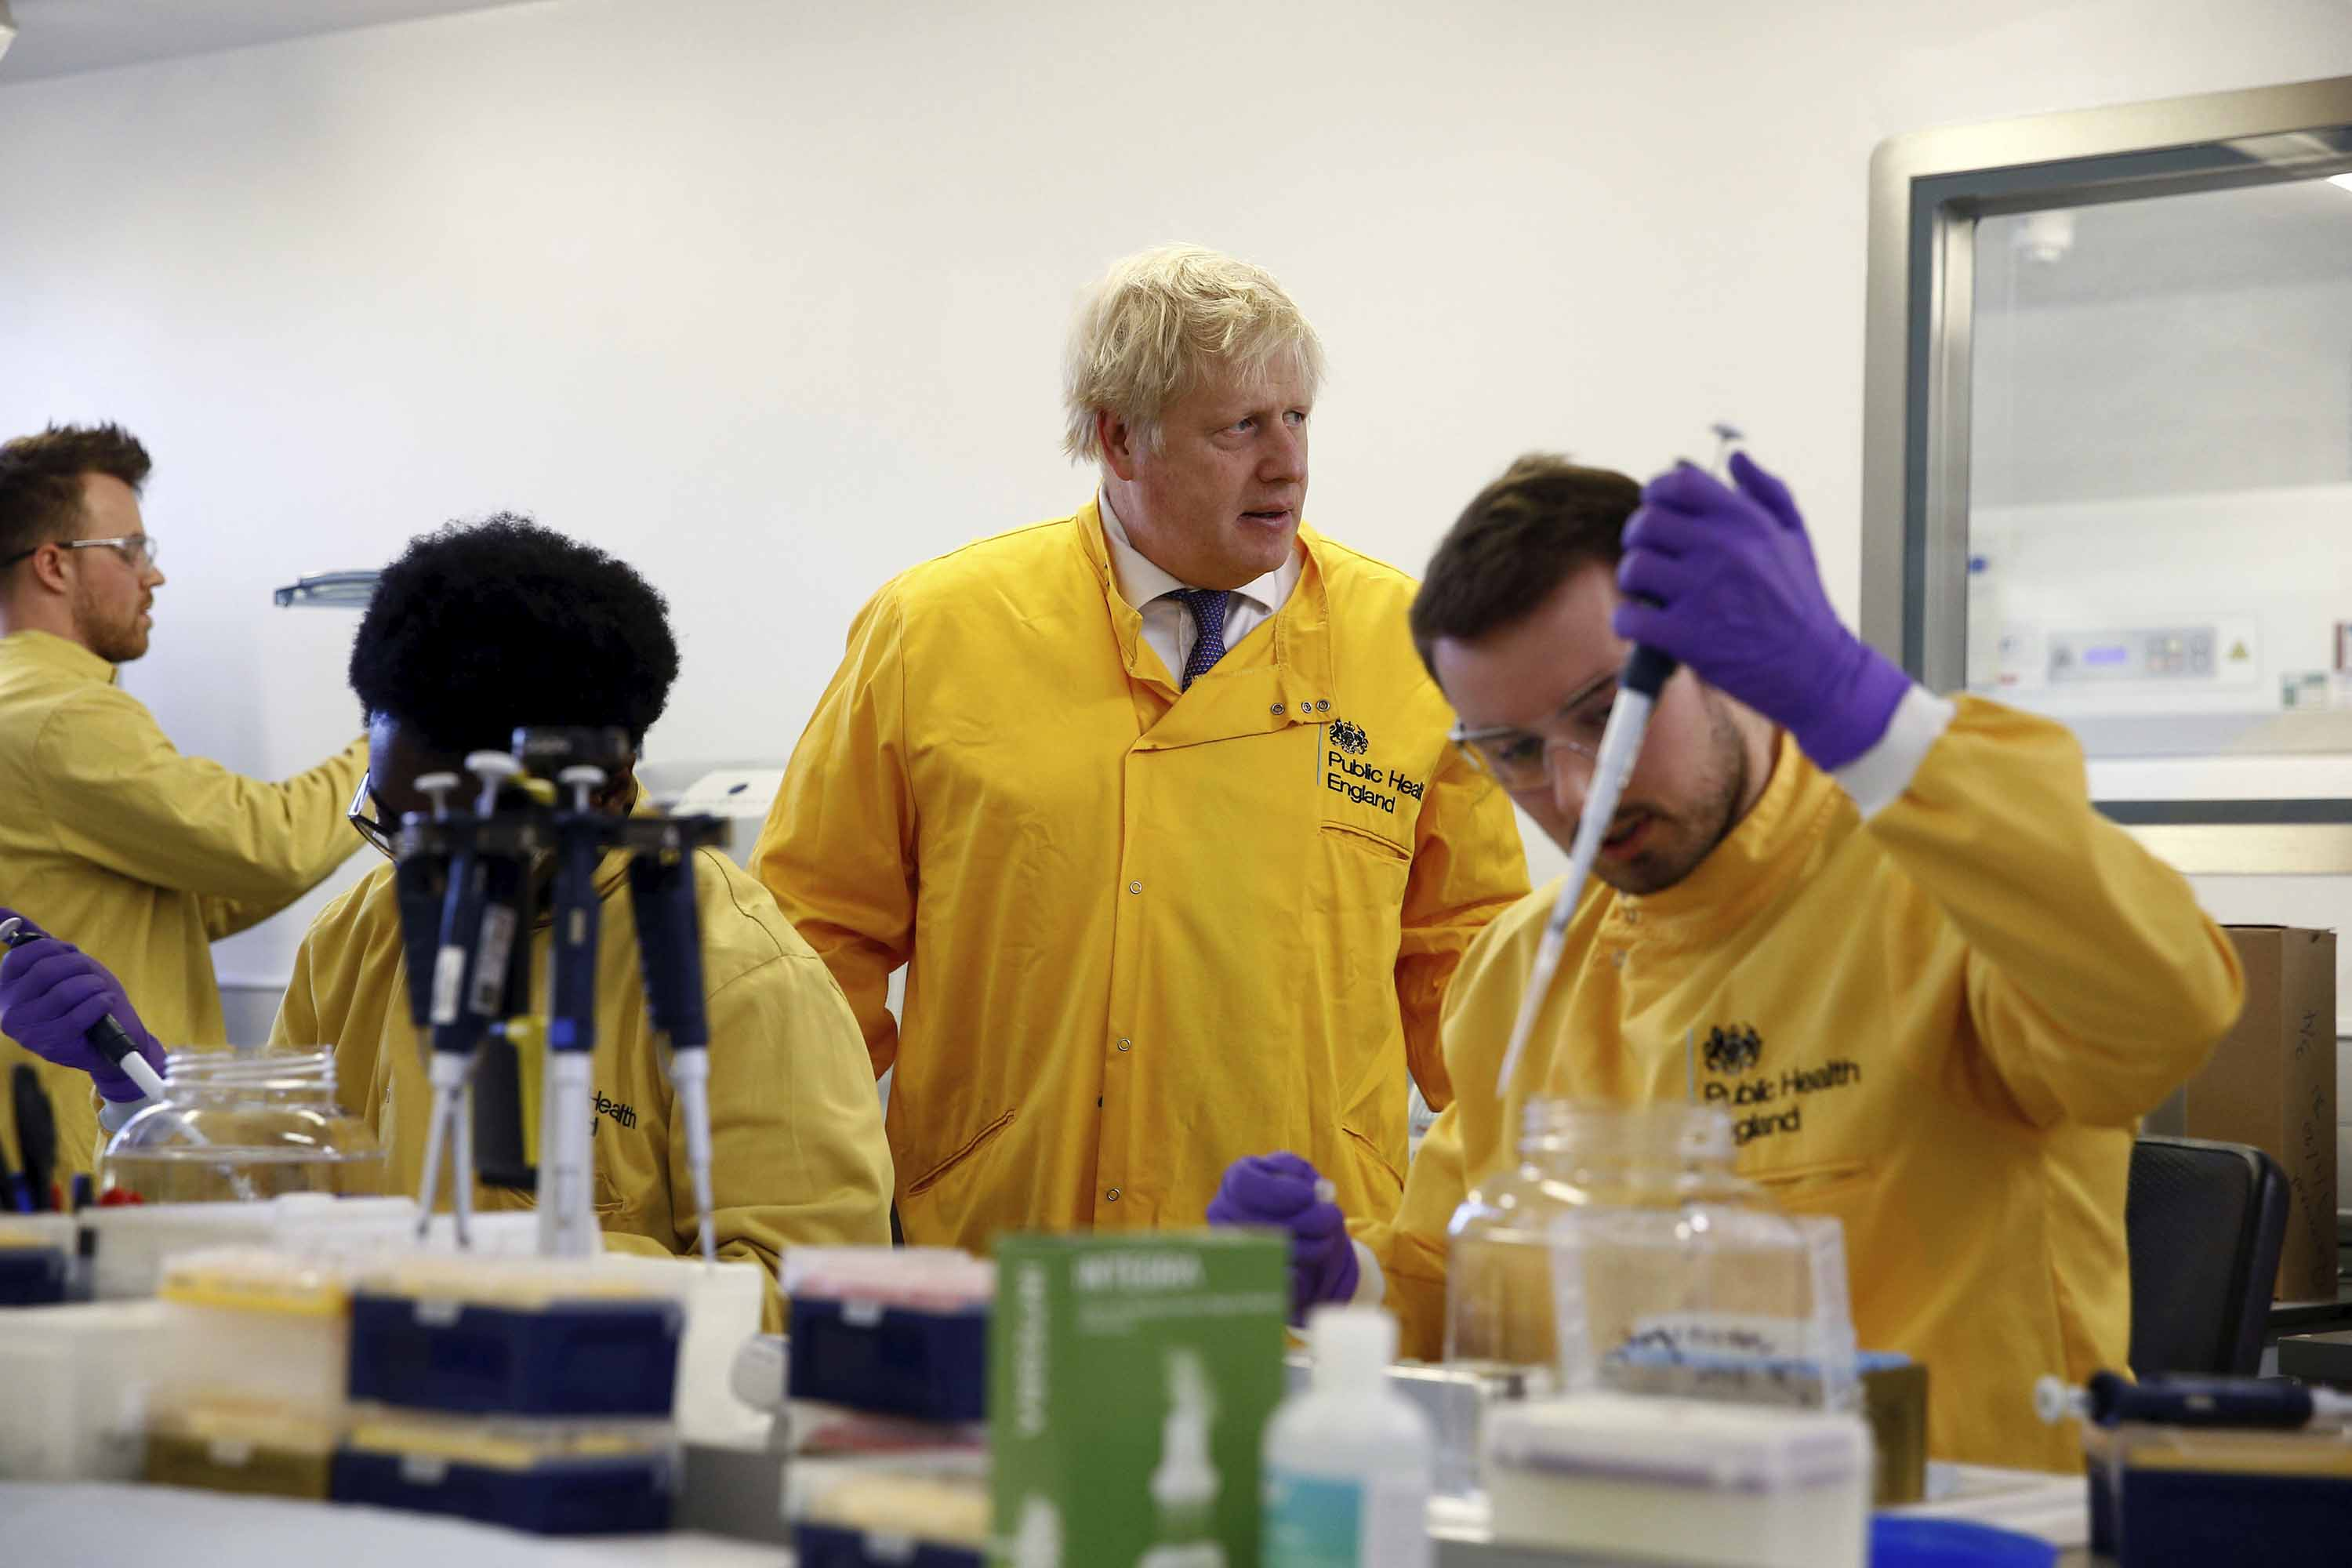 Prime Minister Boris Johnson visits a laboratoryat the Public Health England National Infection Service in north London, after more coronavirus patients were identified in the country on Sunday.